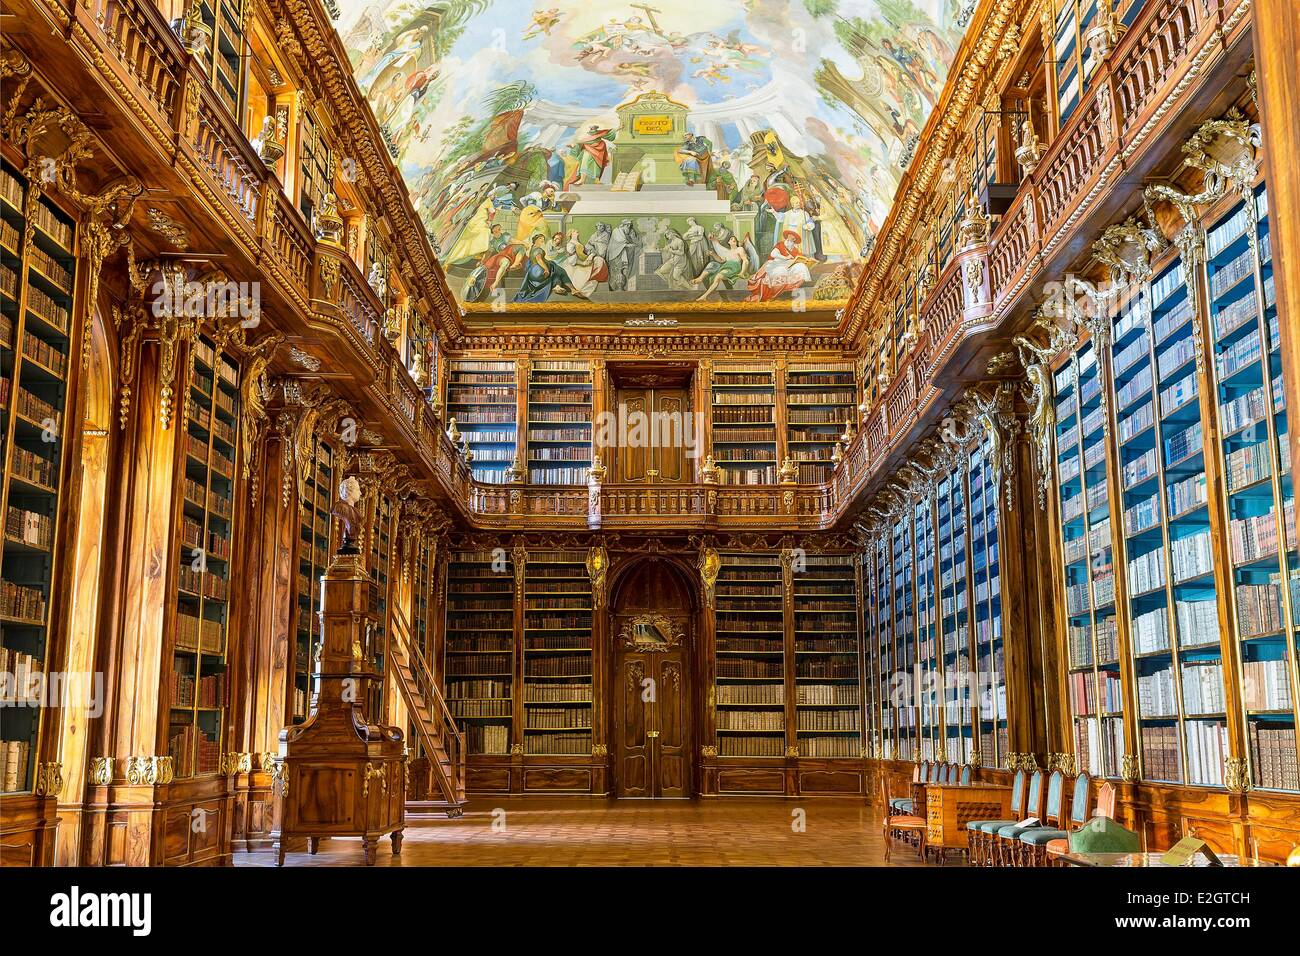 Czech Republic Prague historical centre listed as World Heritage by UNESCO interior of Library in Strahov Monastery, - Stock Image